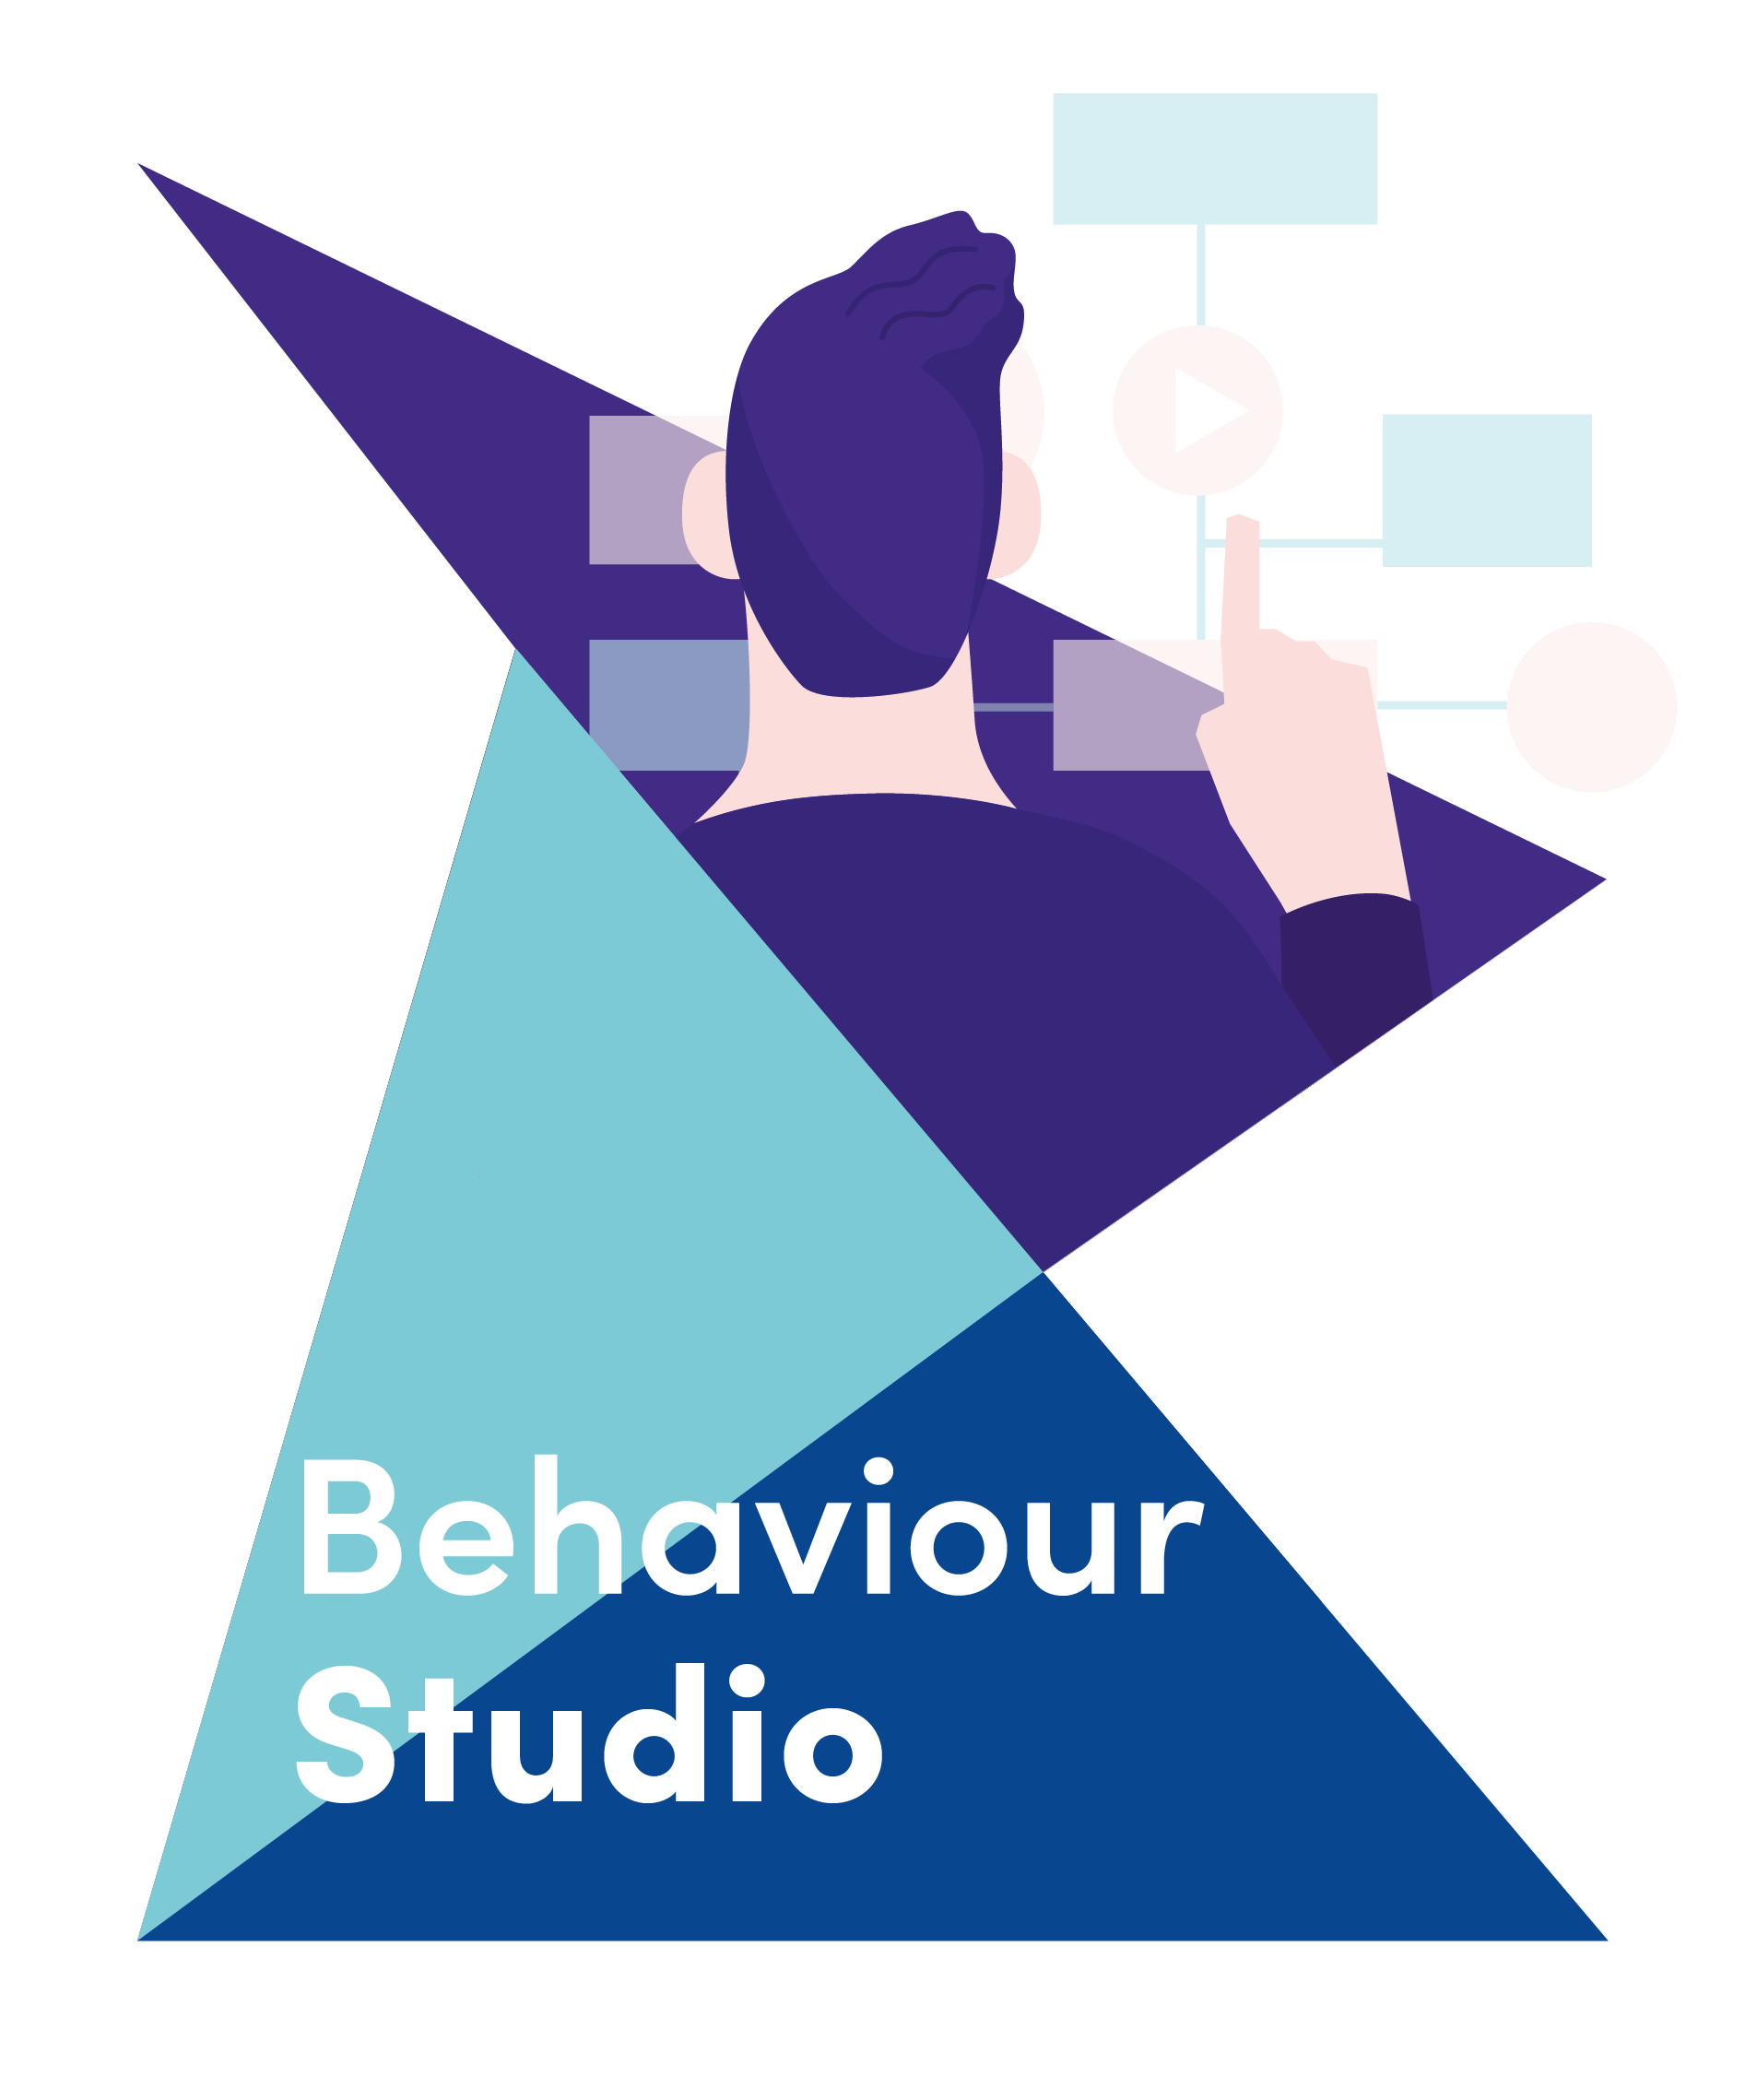 Reveal unseen opportunities consumer, user and employee behaviour. At BehaviourStudio we research and solve problems using behavioural insights.